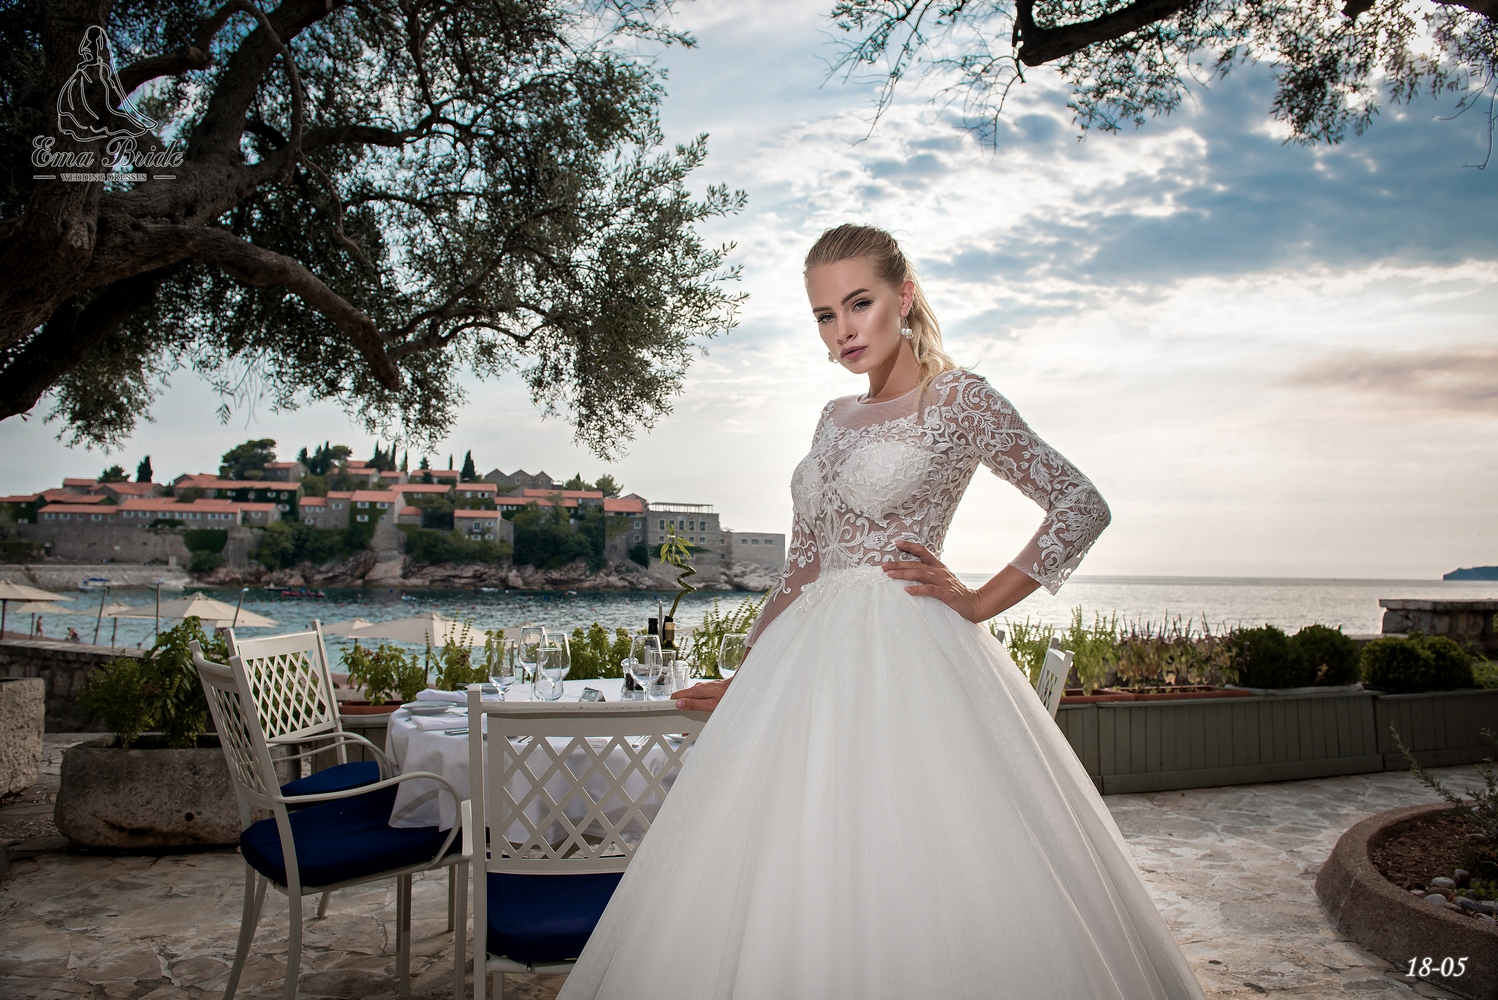 Lush wedding dress with long sleeves